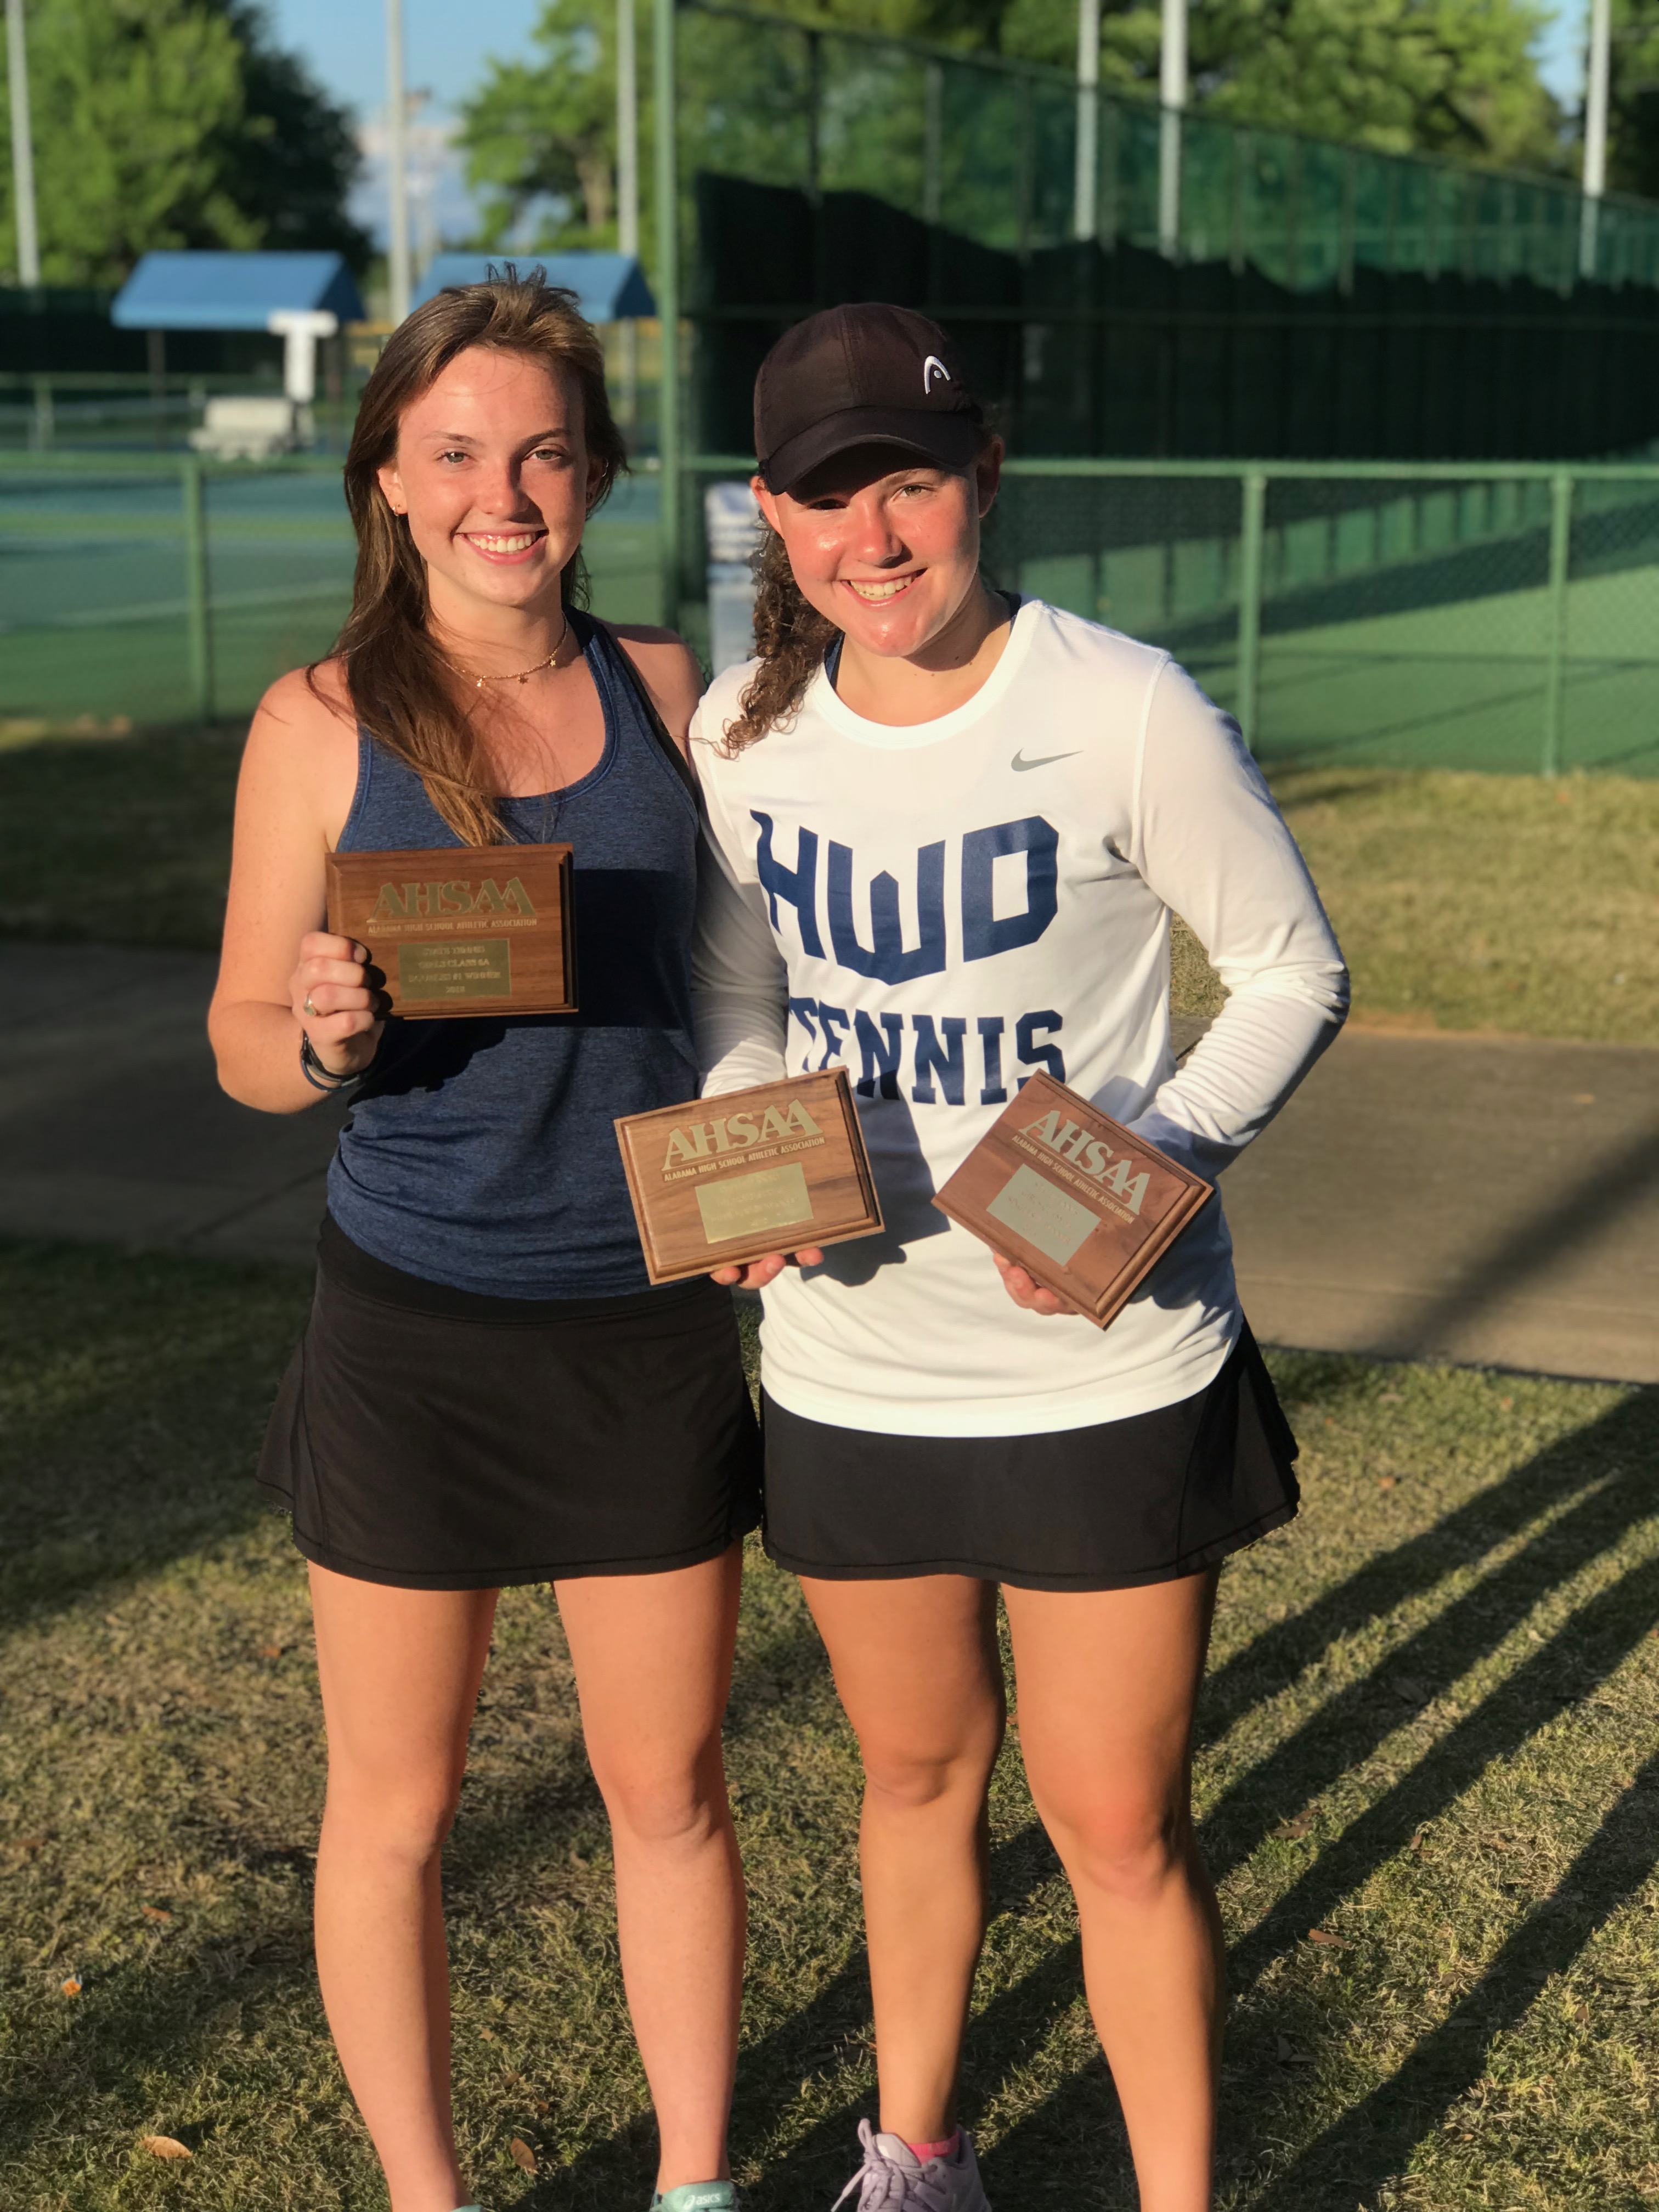 Patriots White And Farrell win the 2018 6A Tennis Doubles State Championship